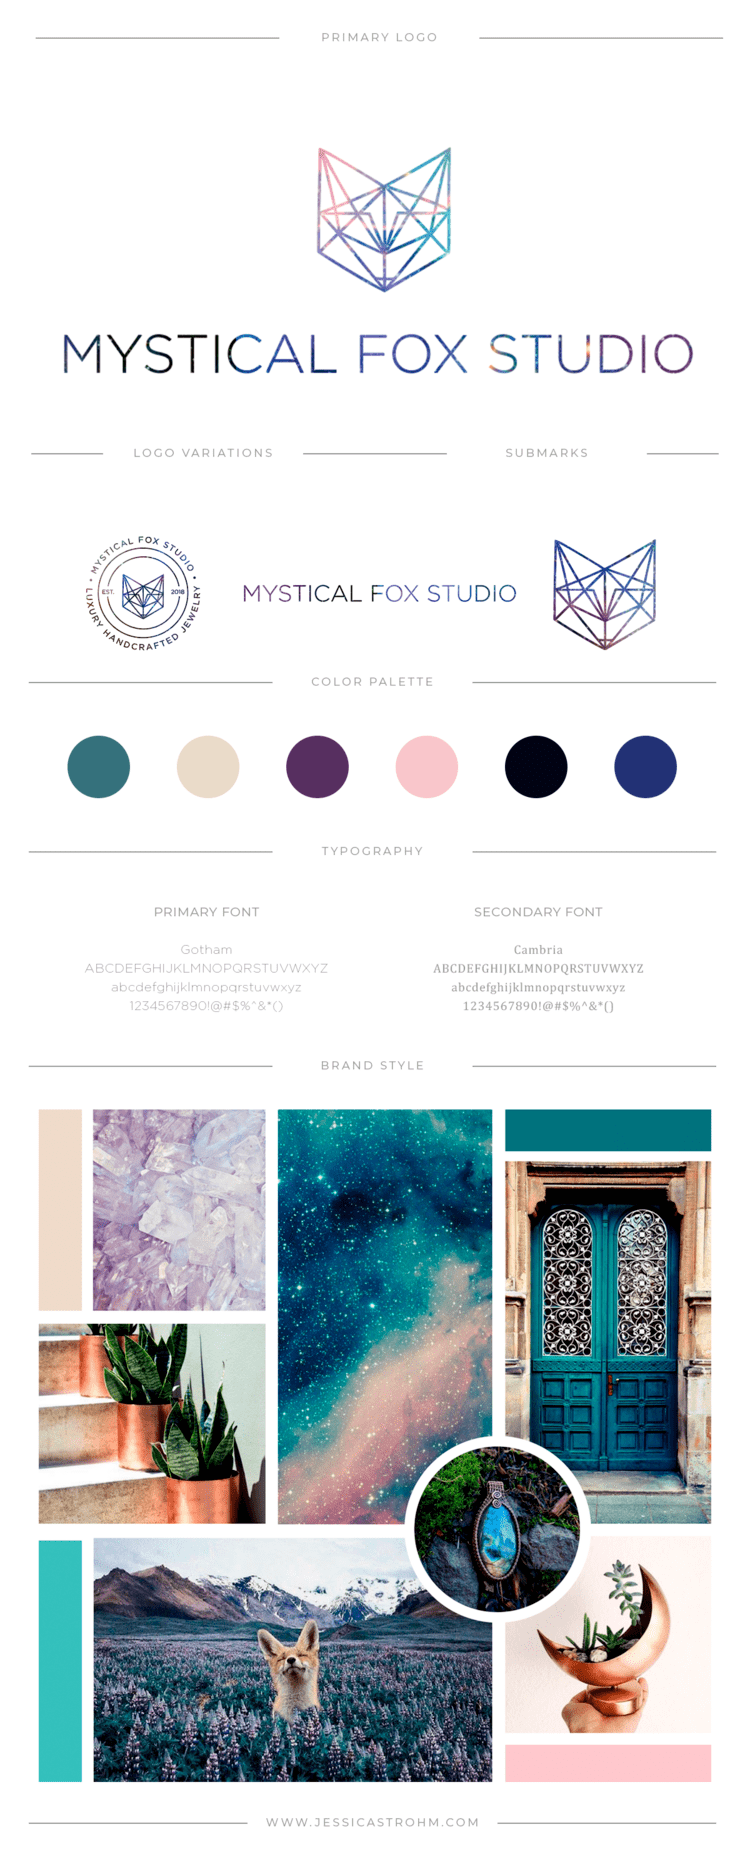 mystical-fox-studio-brand-board-min.png